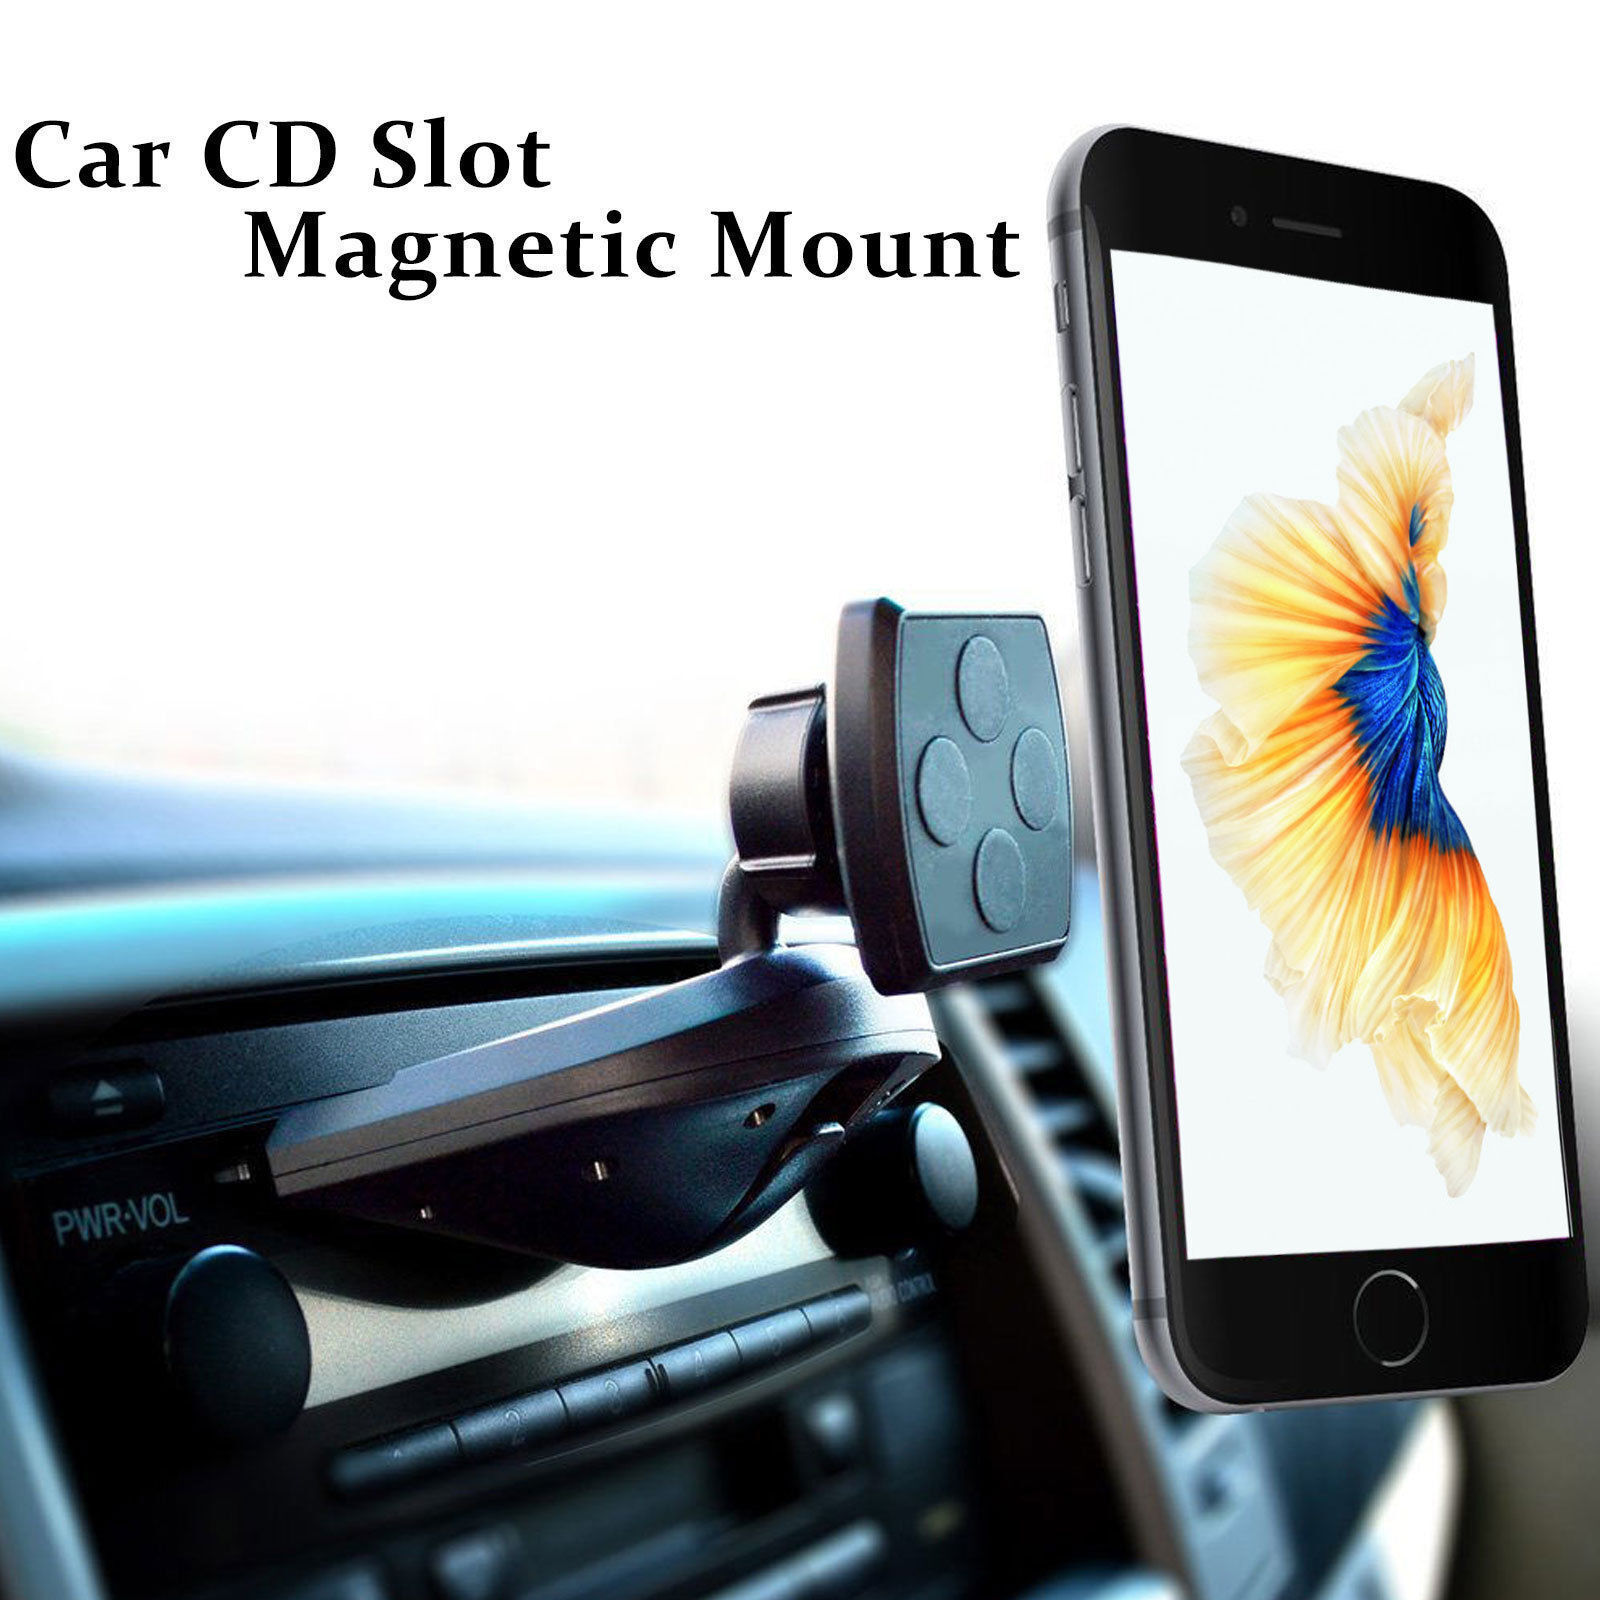 Magnetic Cell Phone Car Holder CD Slot Mount Smartphone Apple iPhone Samsung Galaxy LG Google Motorola